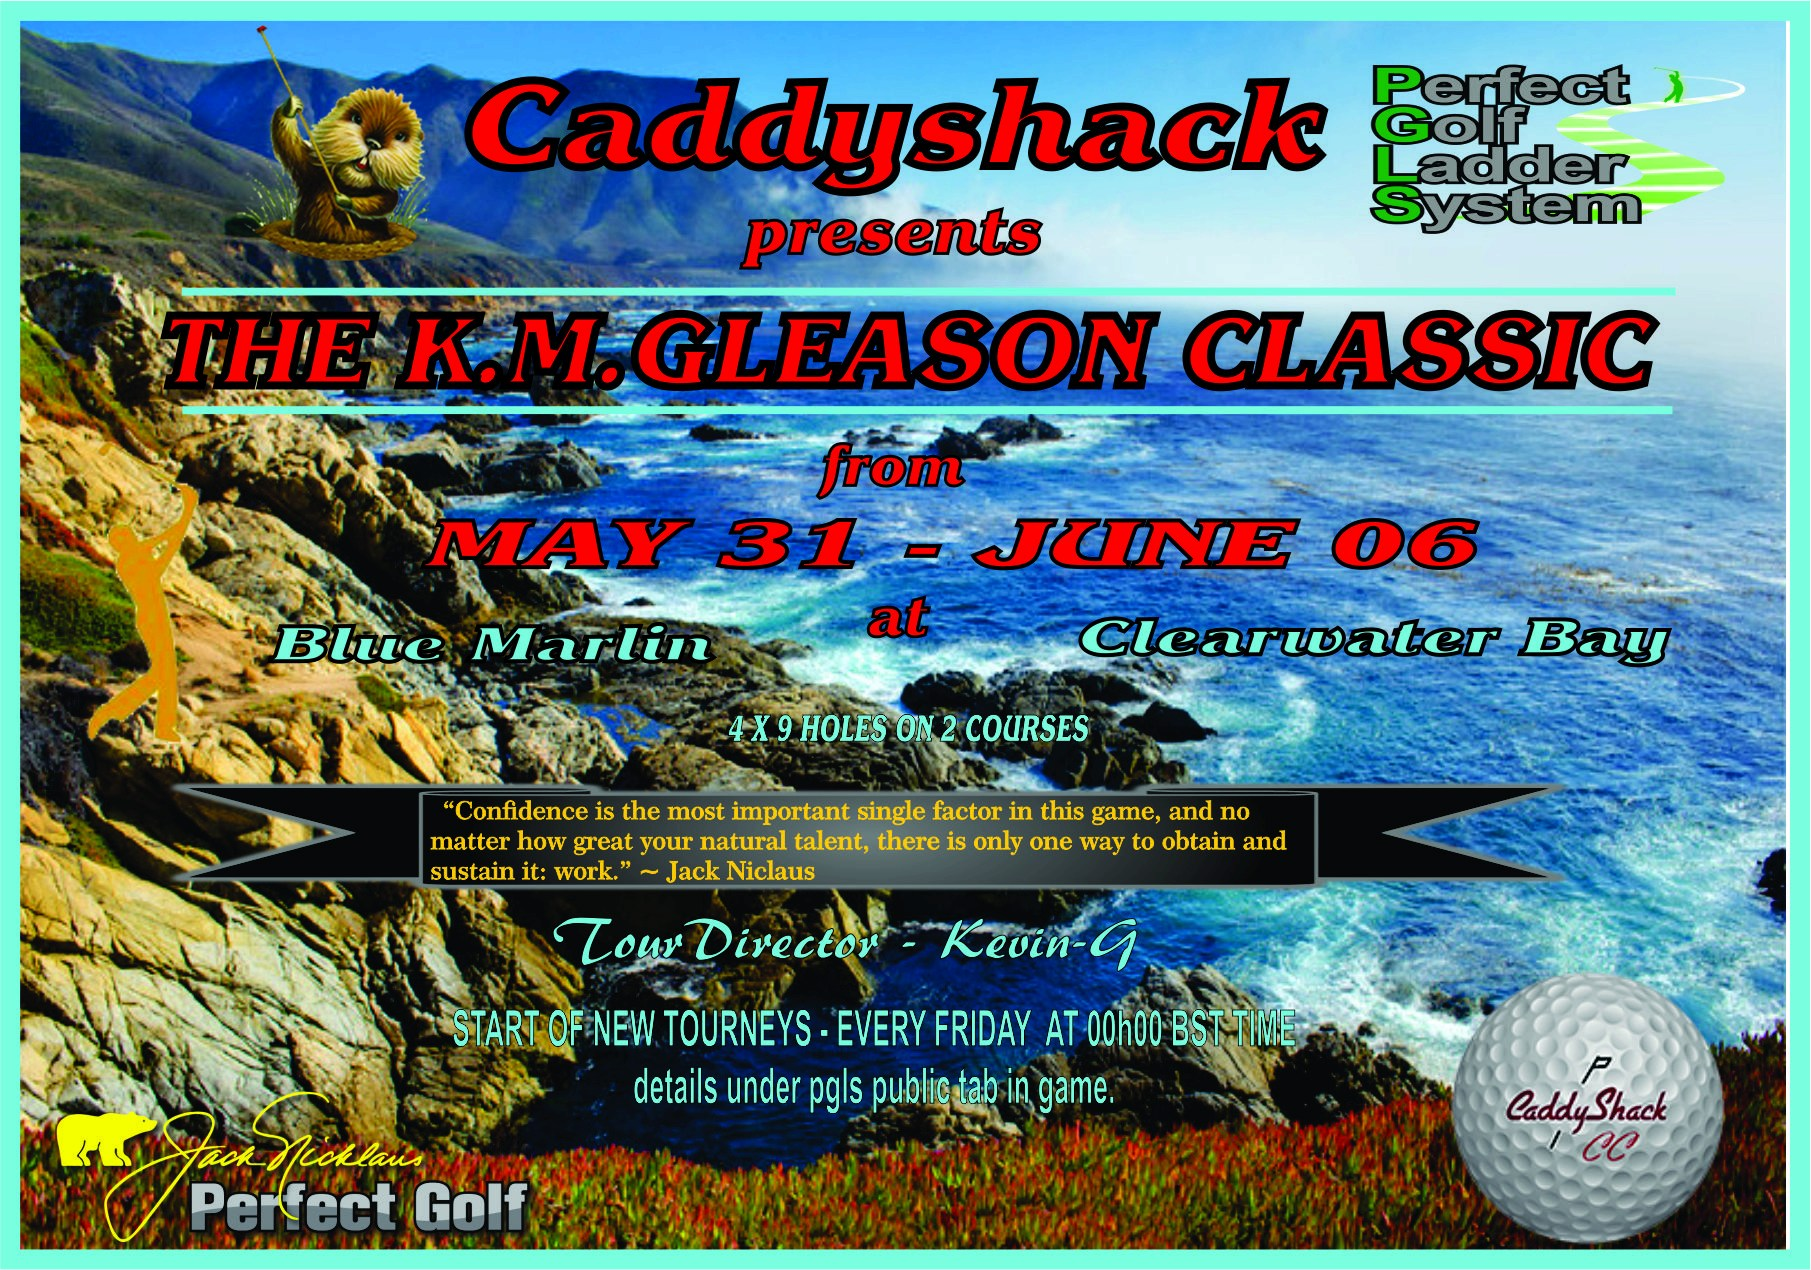 CaddyShack Weekly Tournament Kmglea10